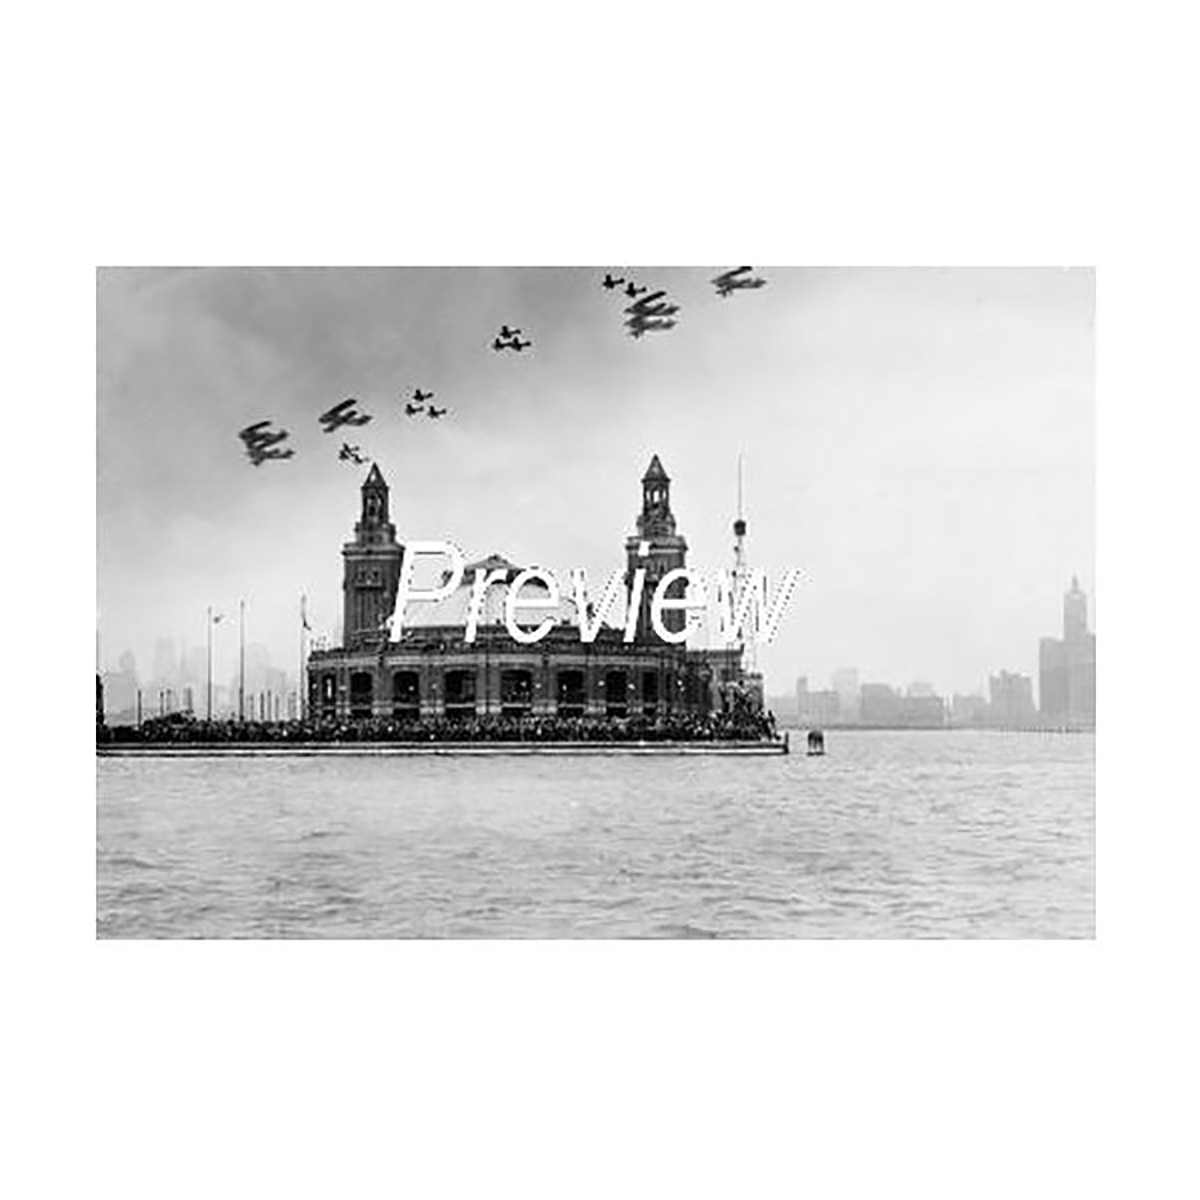 U.S. Army Air Maneuvers Over Navy Pier Photograph (1931)